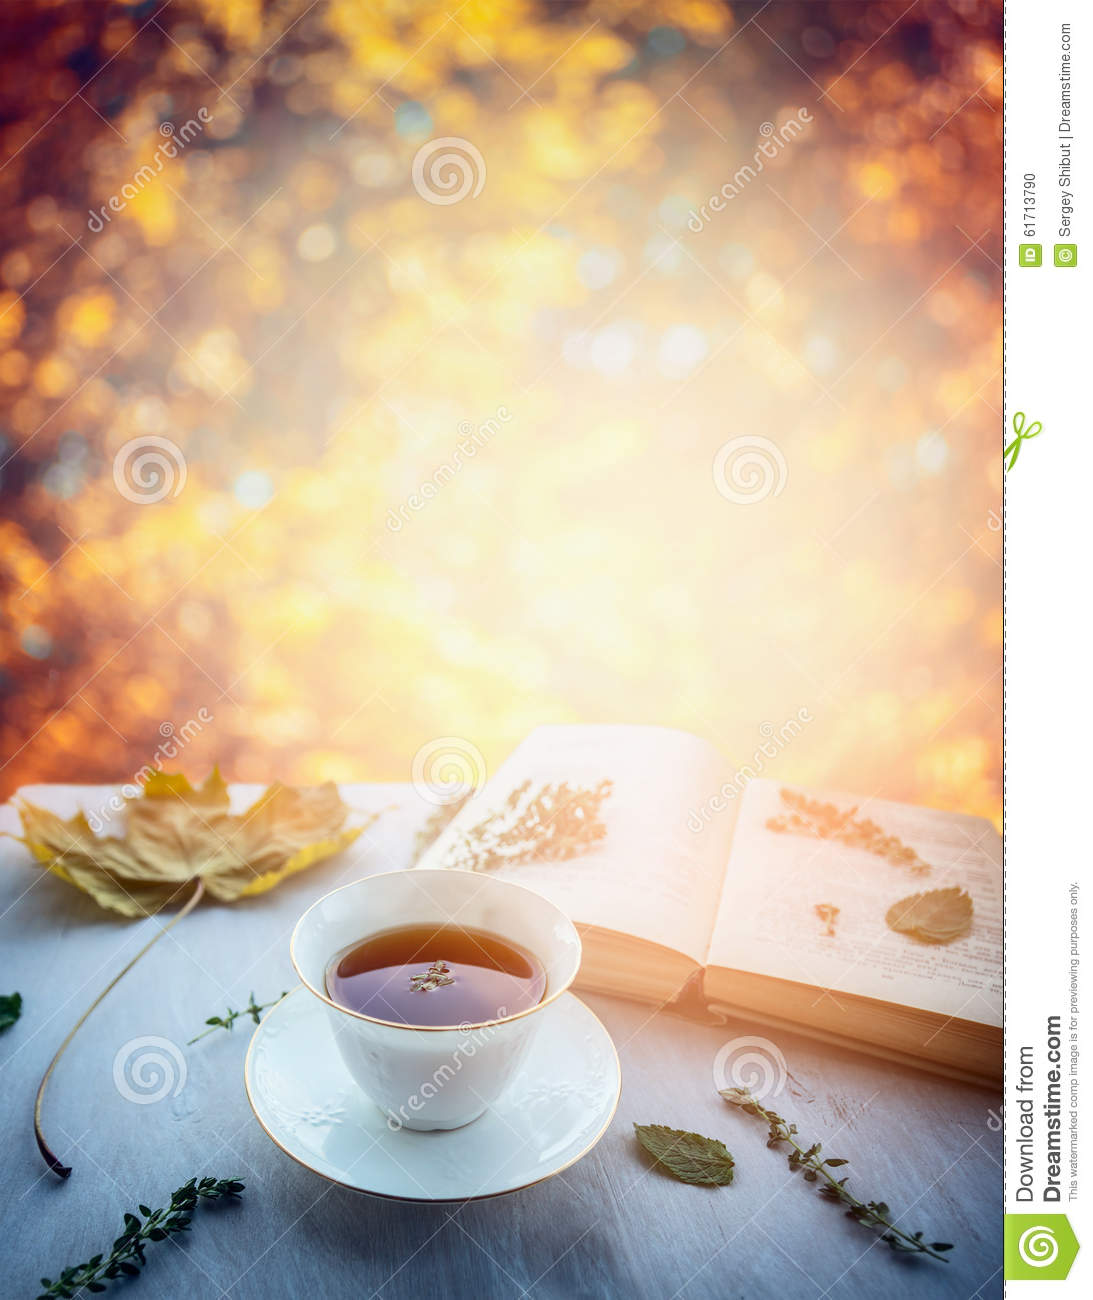 Fall Wooden Wallpaper Cup Of Tea With Thyme Autumn Leaves And Open Book On